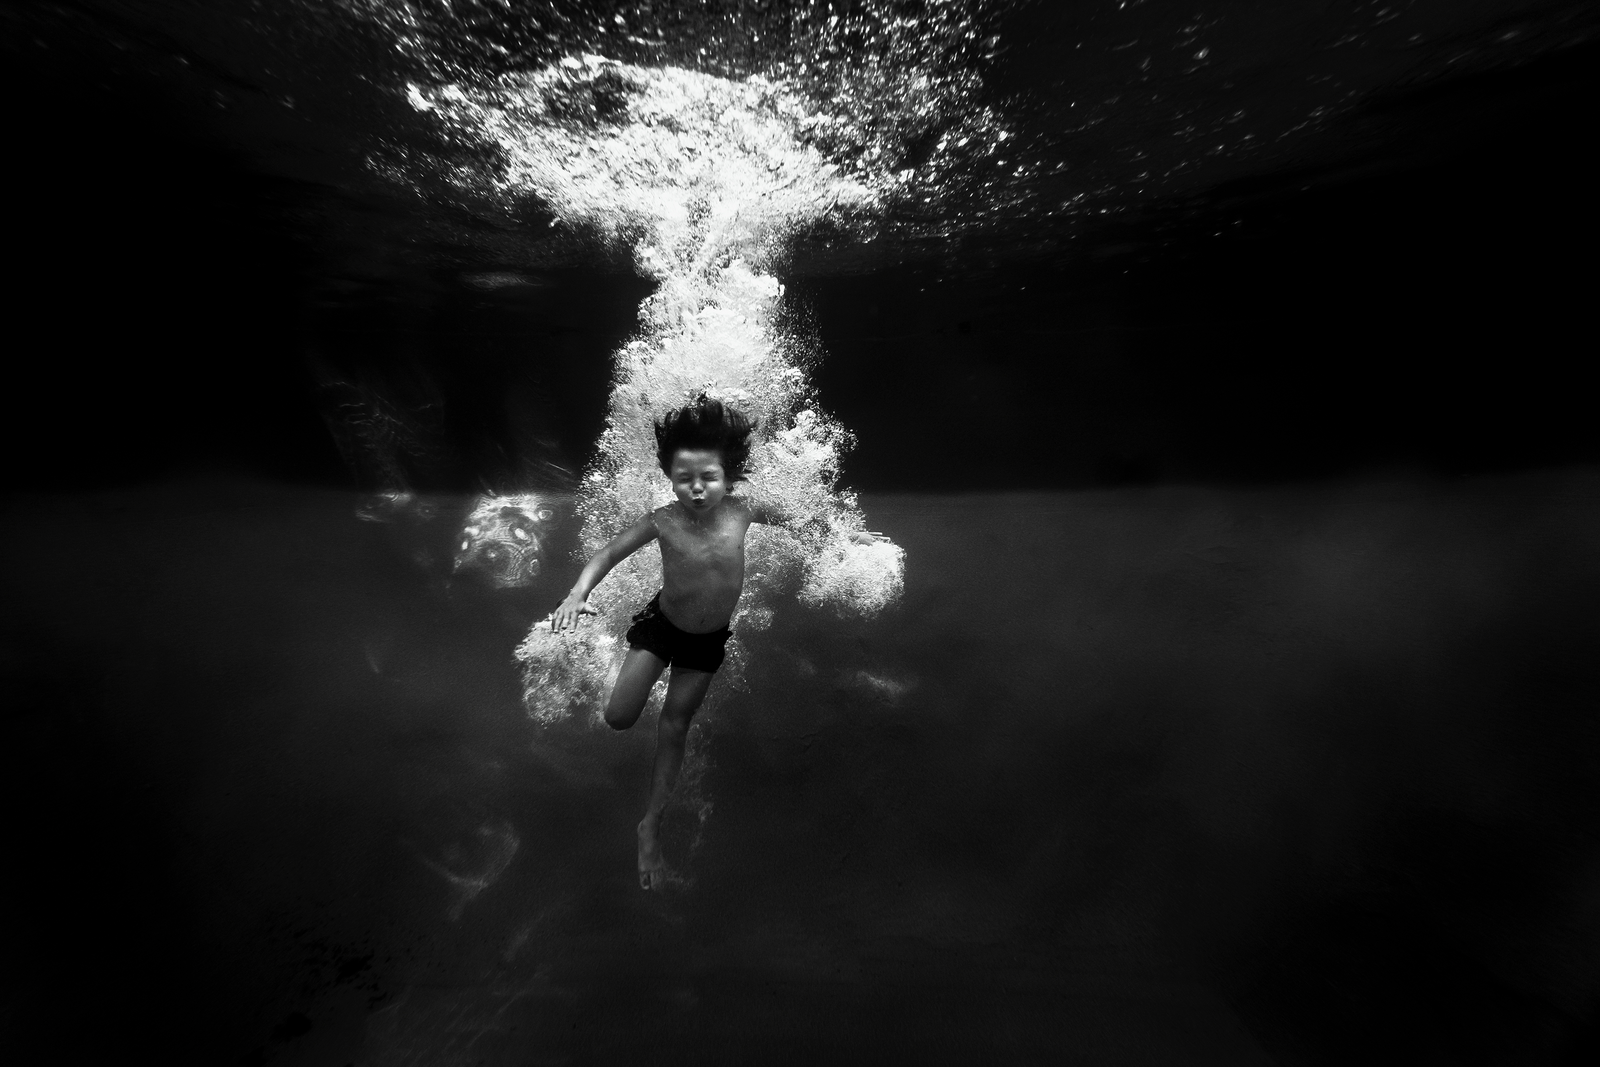 underwater photographer, columbus, ga, atlanta, pool, young boy swimming, diving, bubbles, ker-fox photography_3664